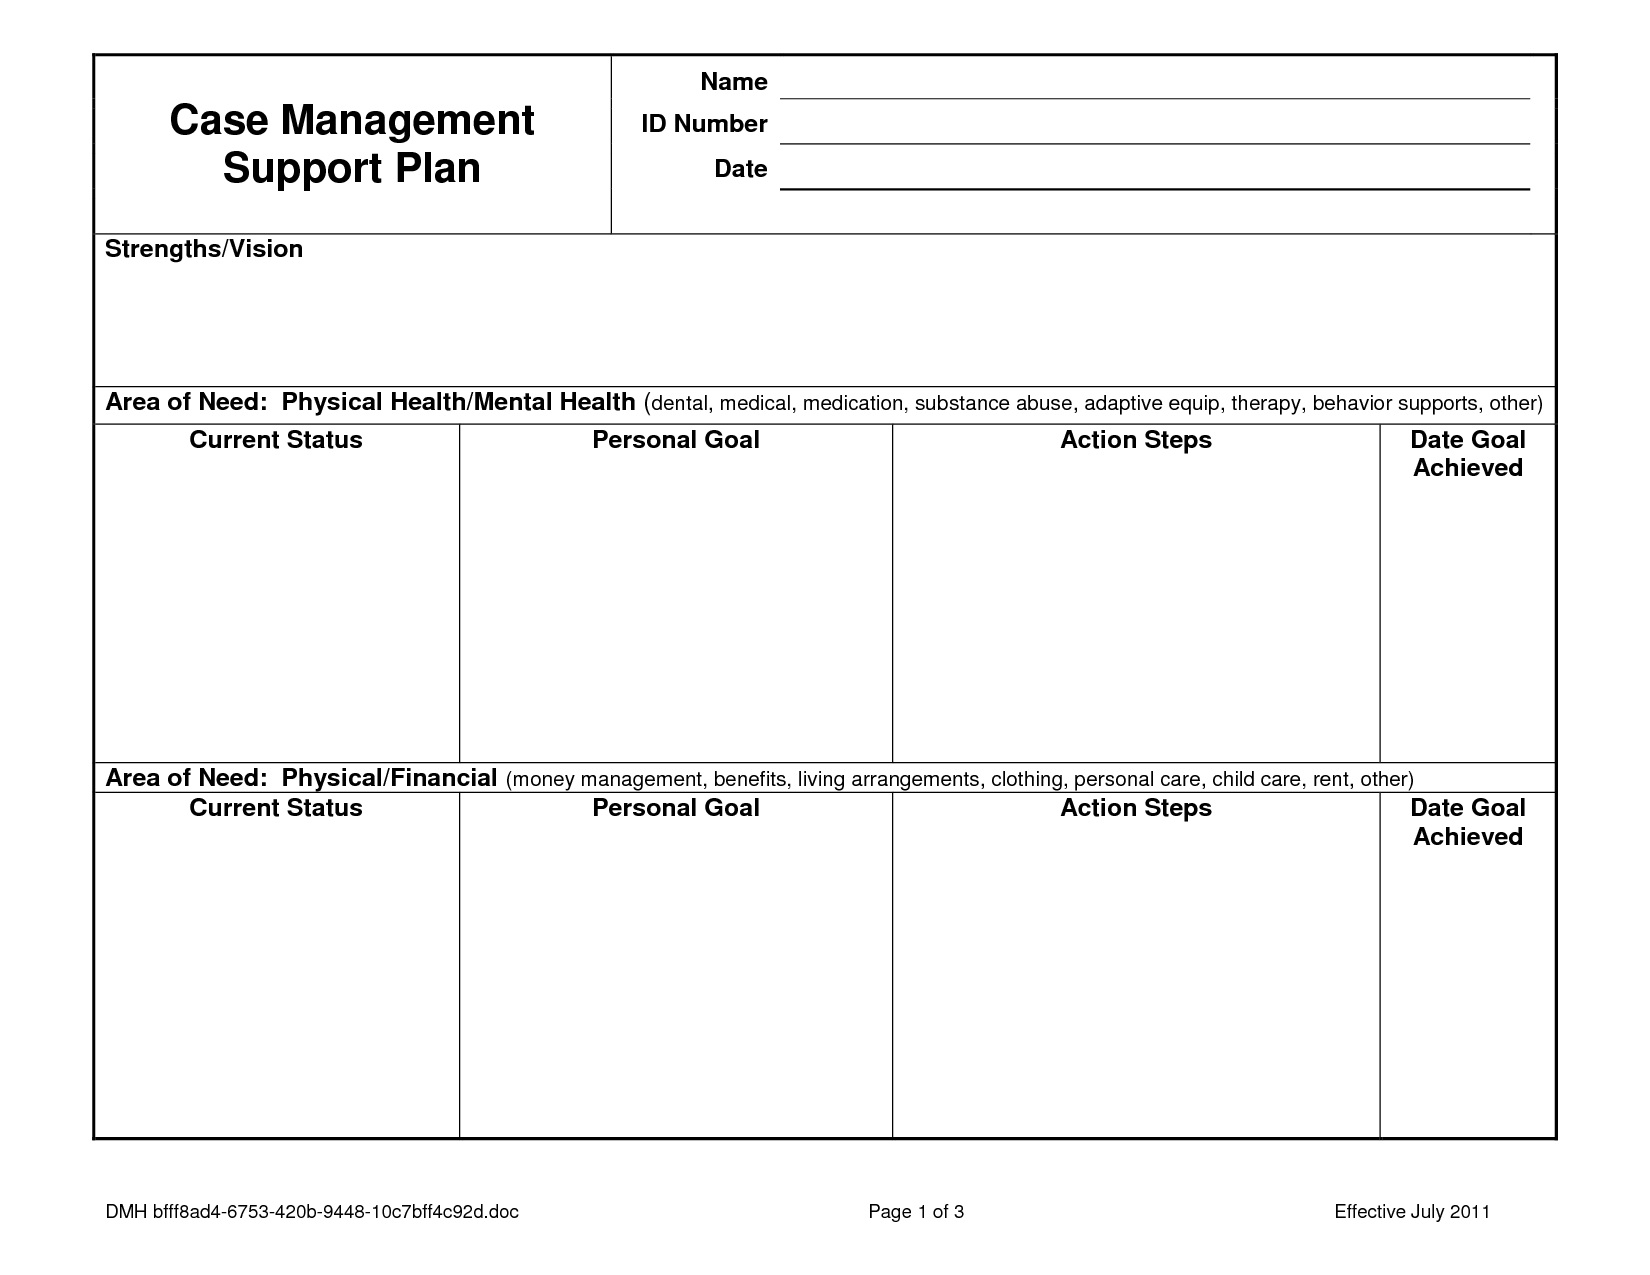 client service plan template - case notes template case management service plan case